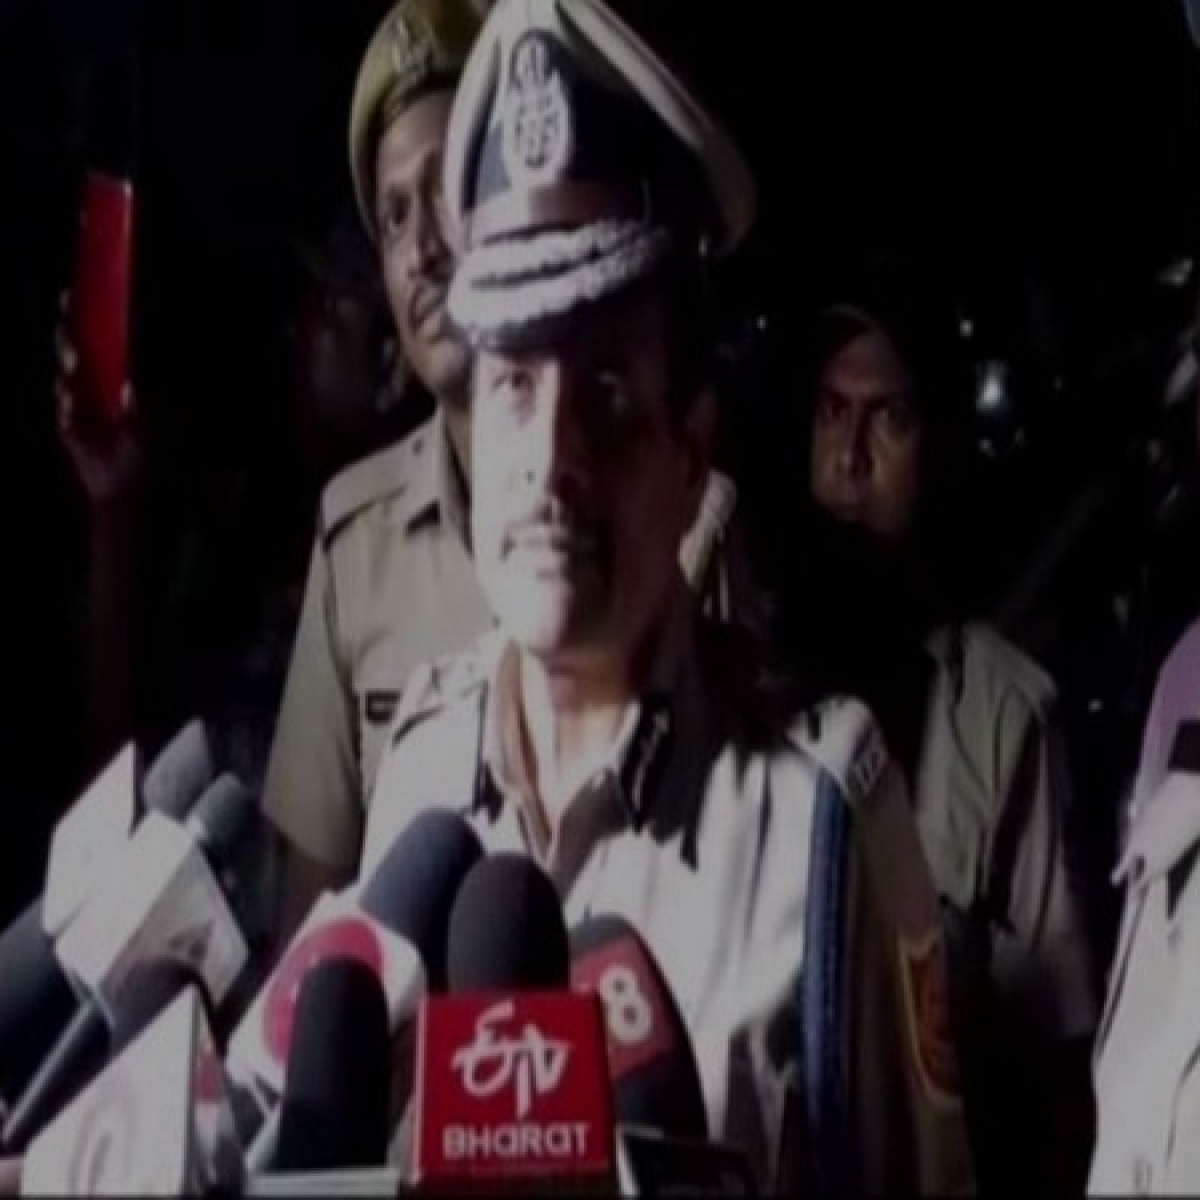 Will take action as and when required; priority is to ensure law and order: West Bengal Police